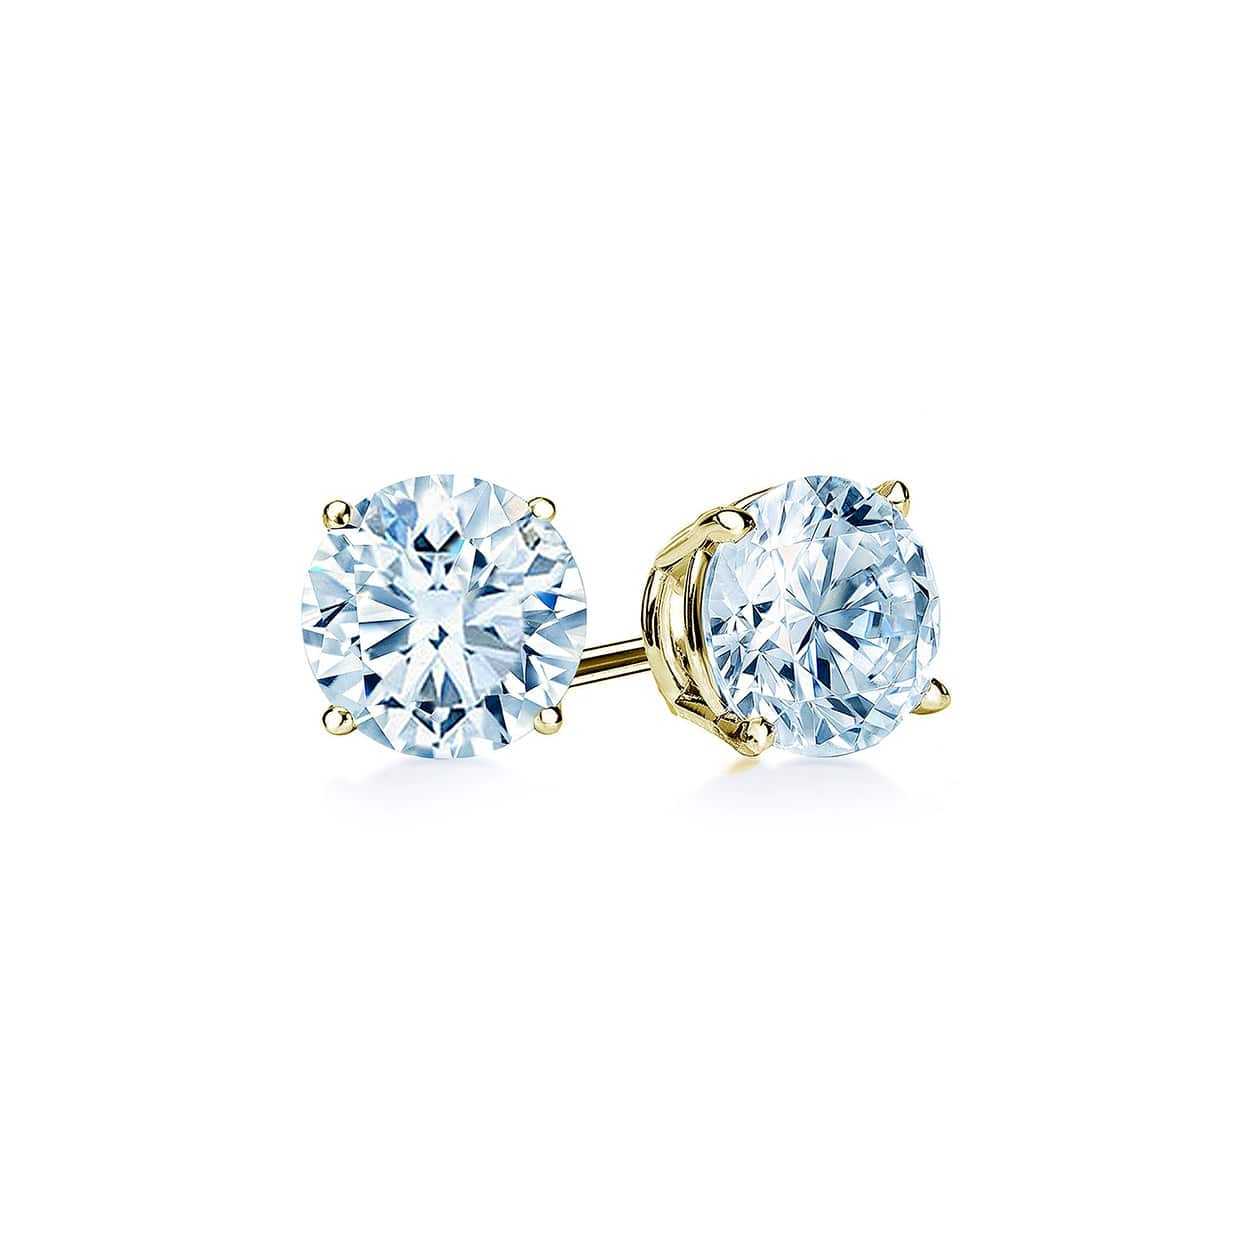 Oxford Gold Classic Solitaire Earrings